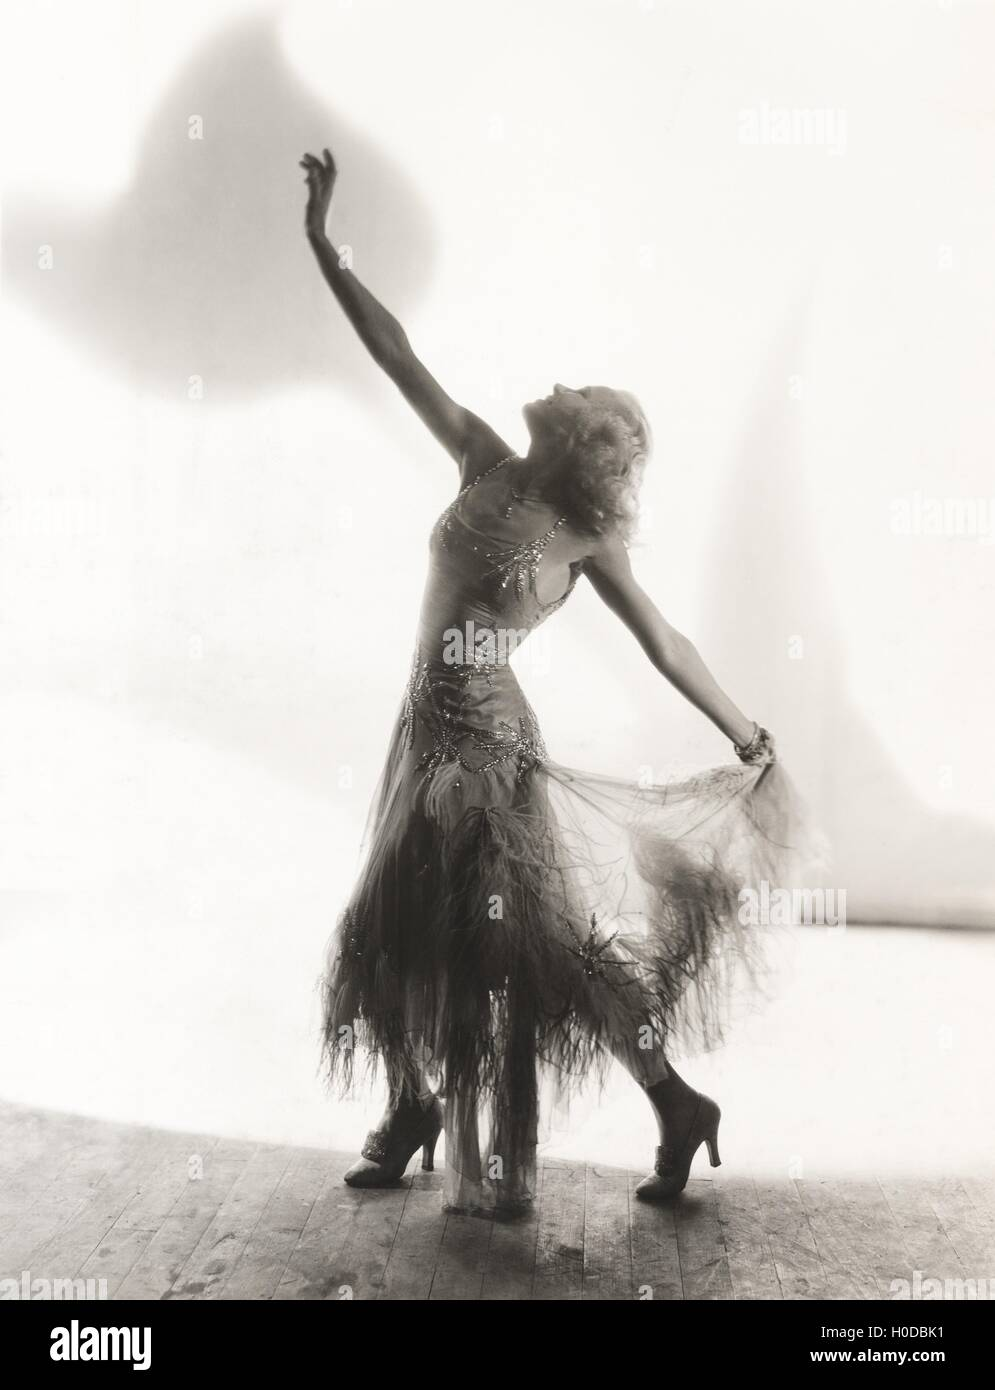 Dancer with arms outstretched against white background - Stock Image